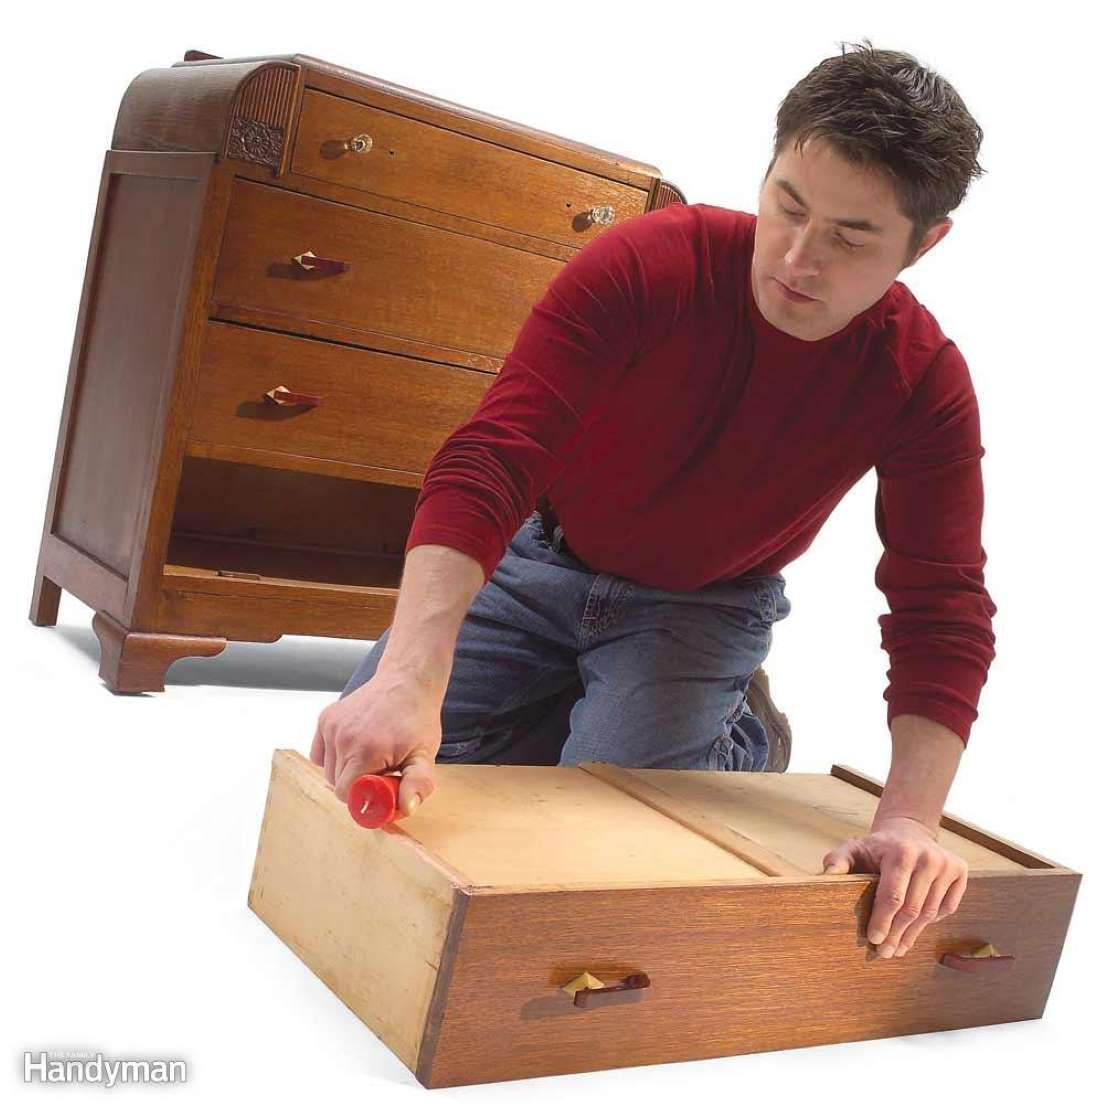 Candle Wax Is A Handy Lubricant For Old Drawers Or Any Furniture That Has Wood Sliding Against Wood Familyhandym Old Drawers Drawer Repair Wooden Drawers